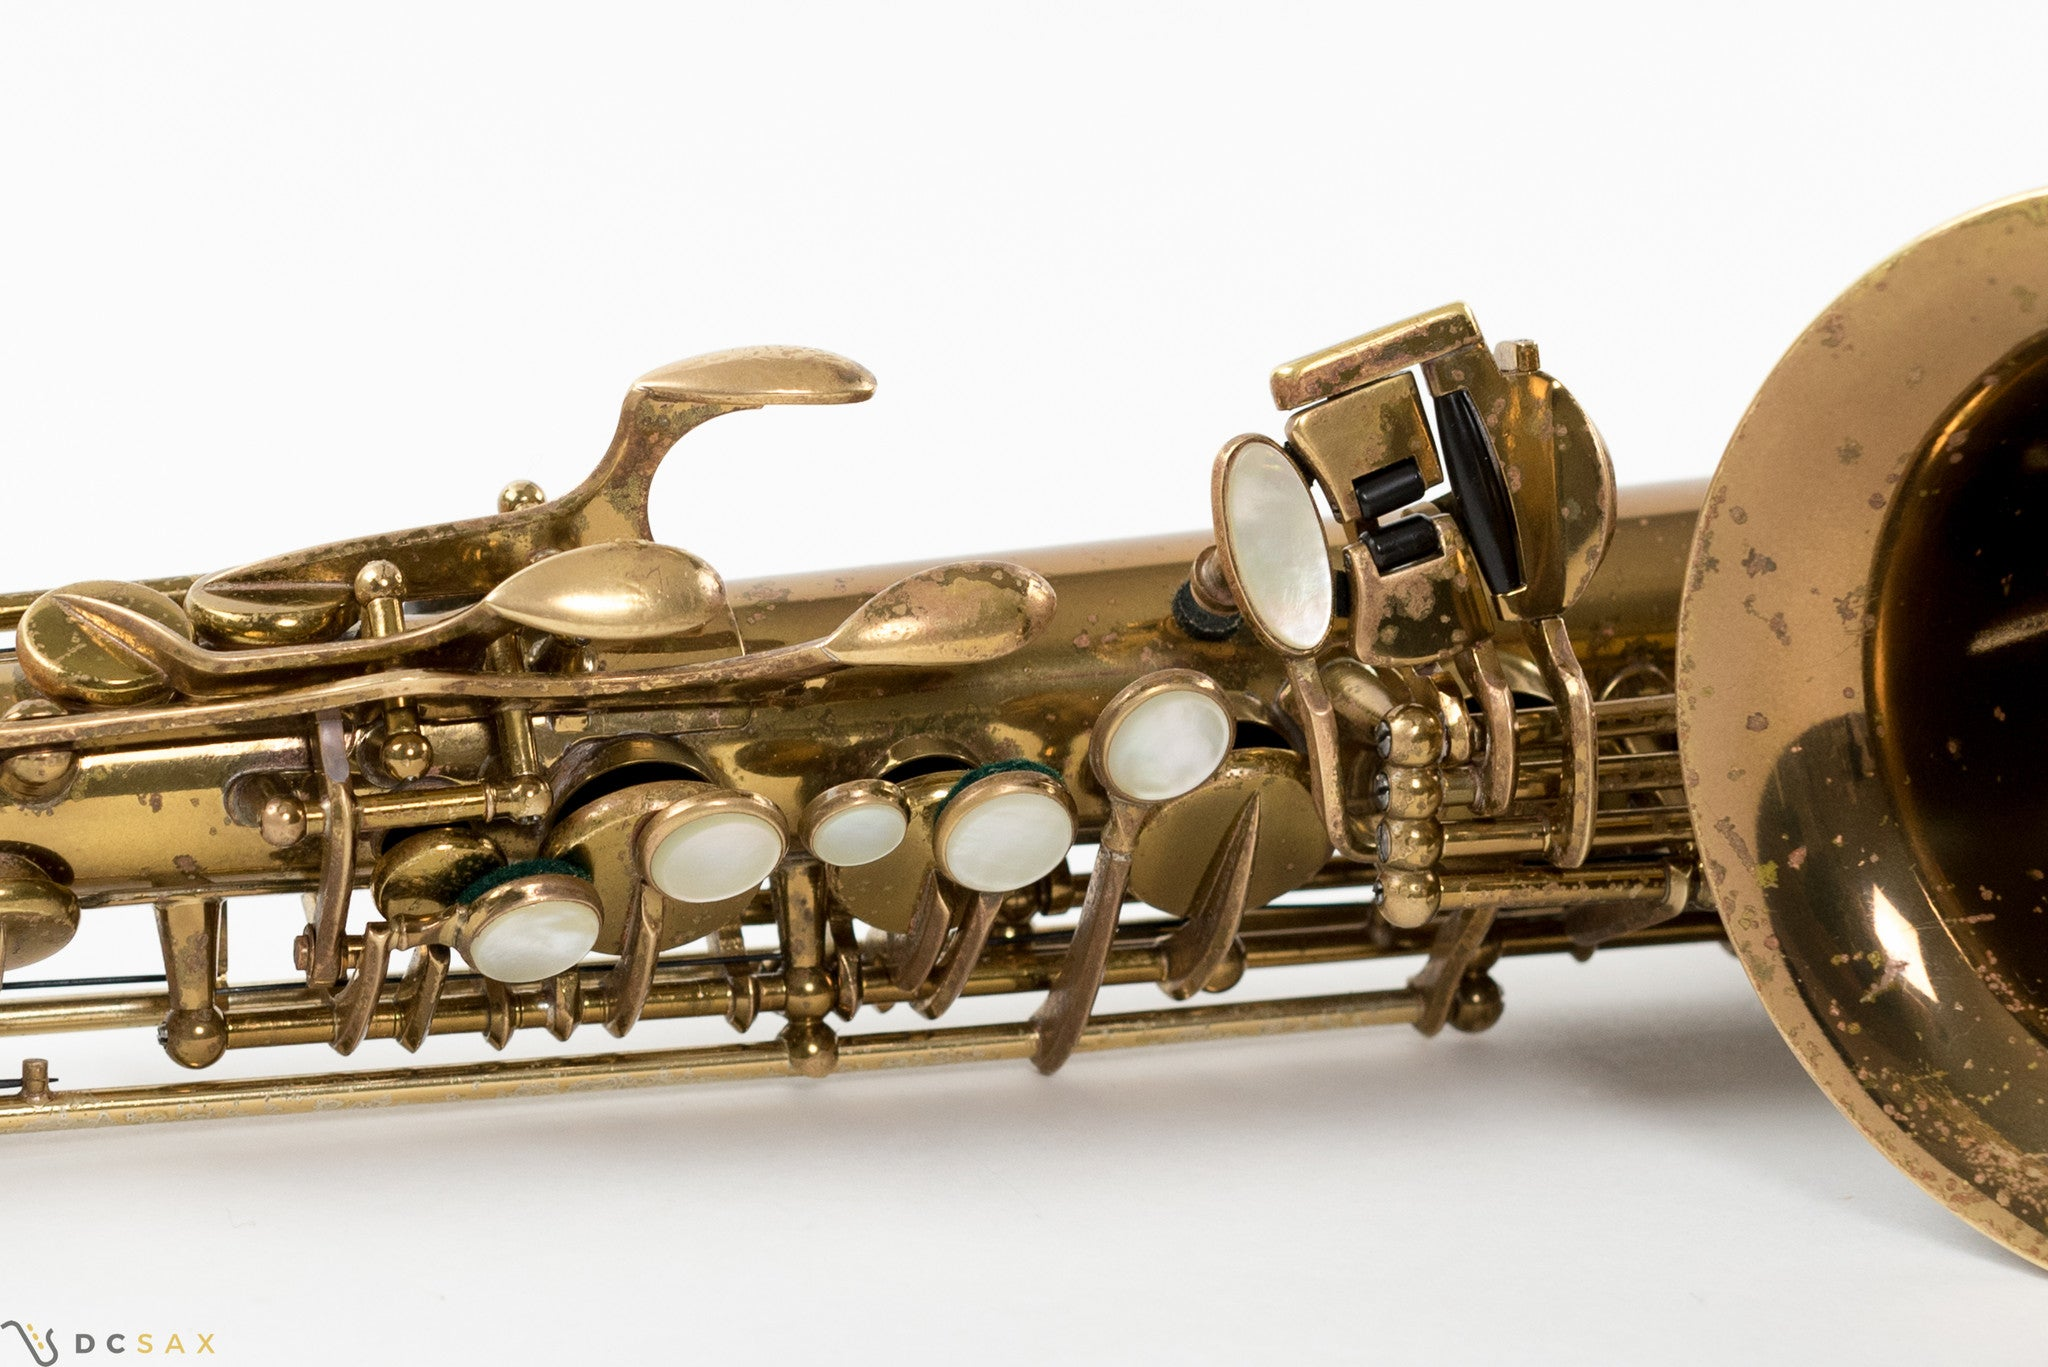 1958 Selmer Mark VI Alto Saxophone, 78,xxx, MEDIUM BOW, Original Lacquer, Fresh Overhaul